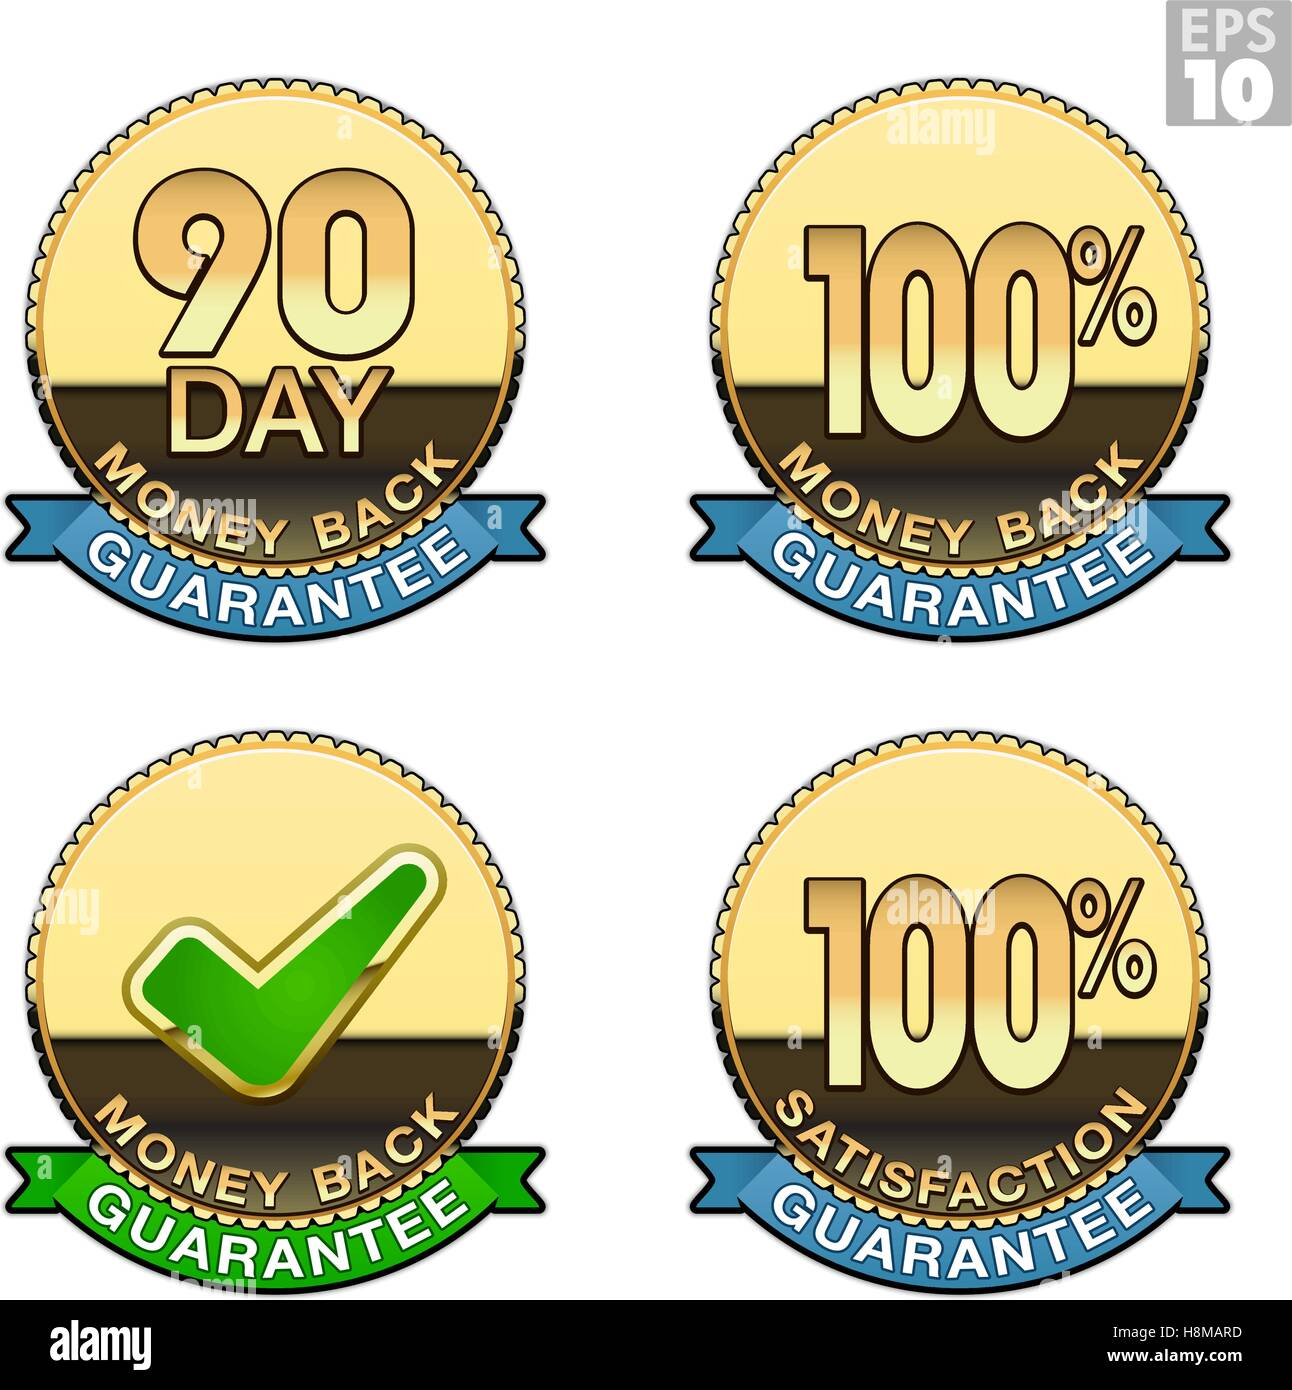 Gold coin with money back guarantee and satisfaction guarantee text, emblem or seal - Stock Vector